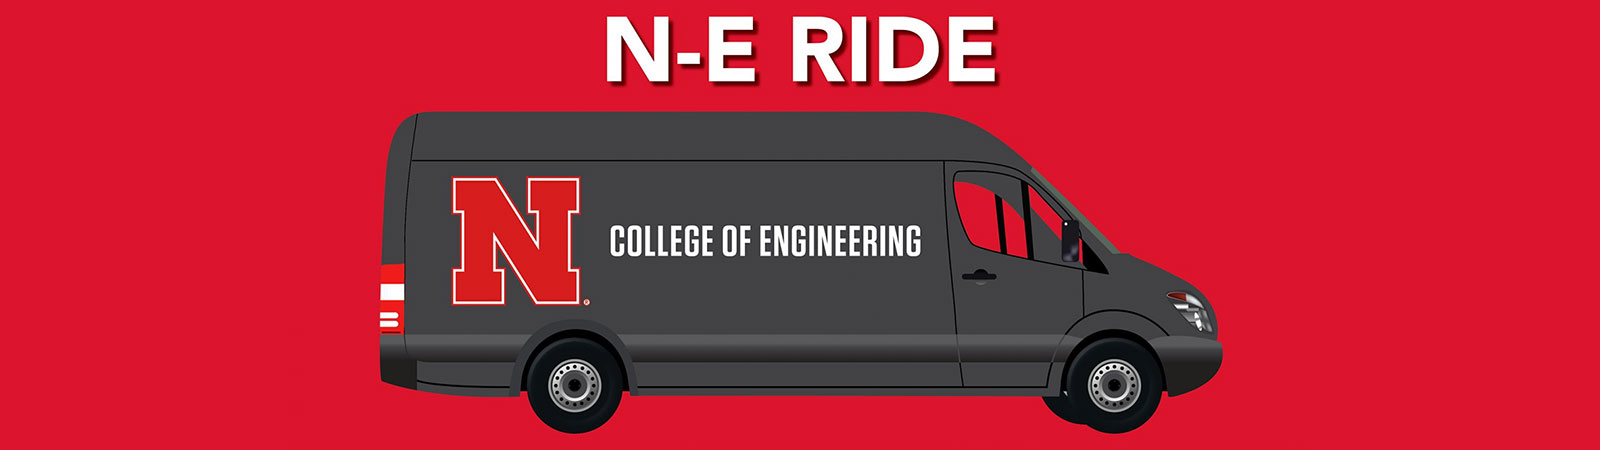 N-E Ride College of Engineering free van service between Lincoln and Omaha campuses for Engineering students.